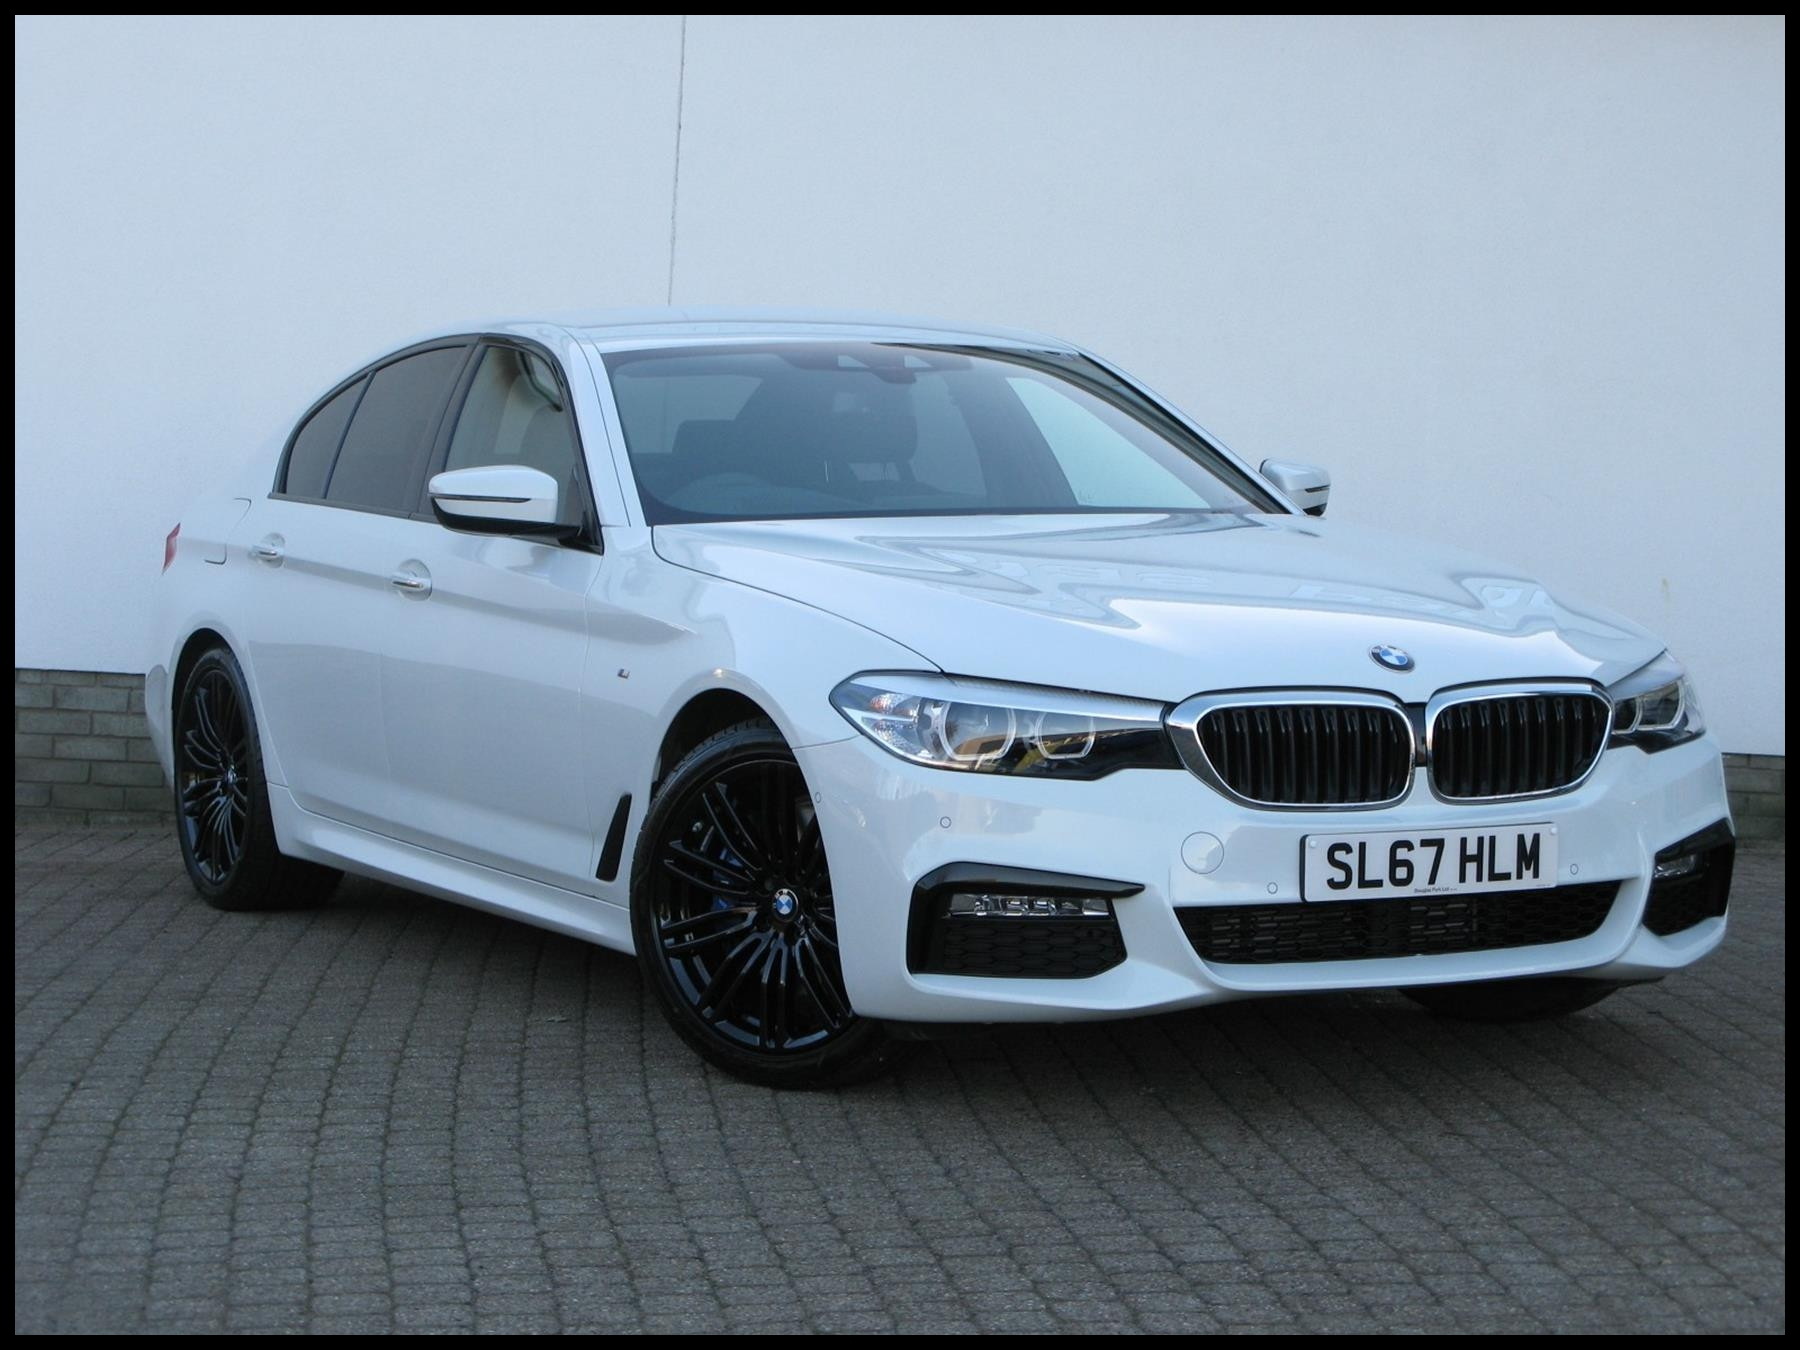 2012 5 series bmw for sale lovely used